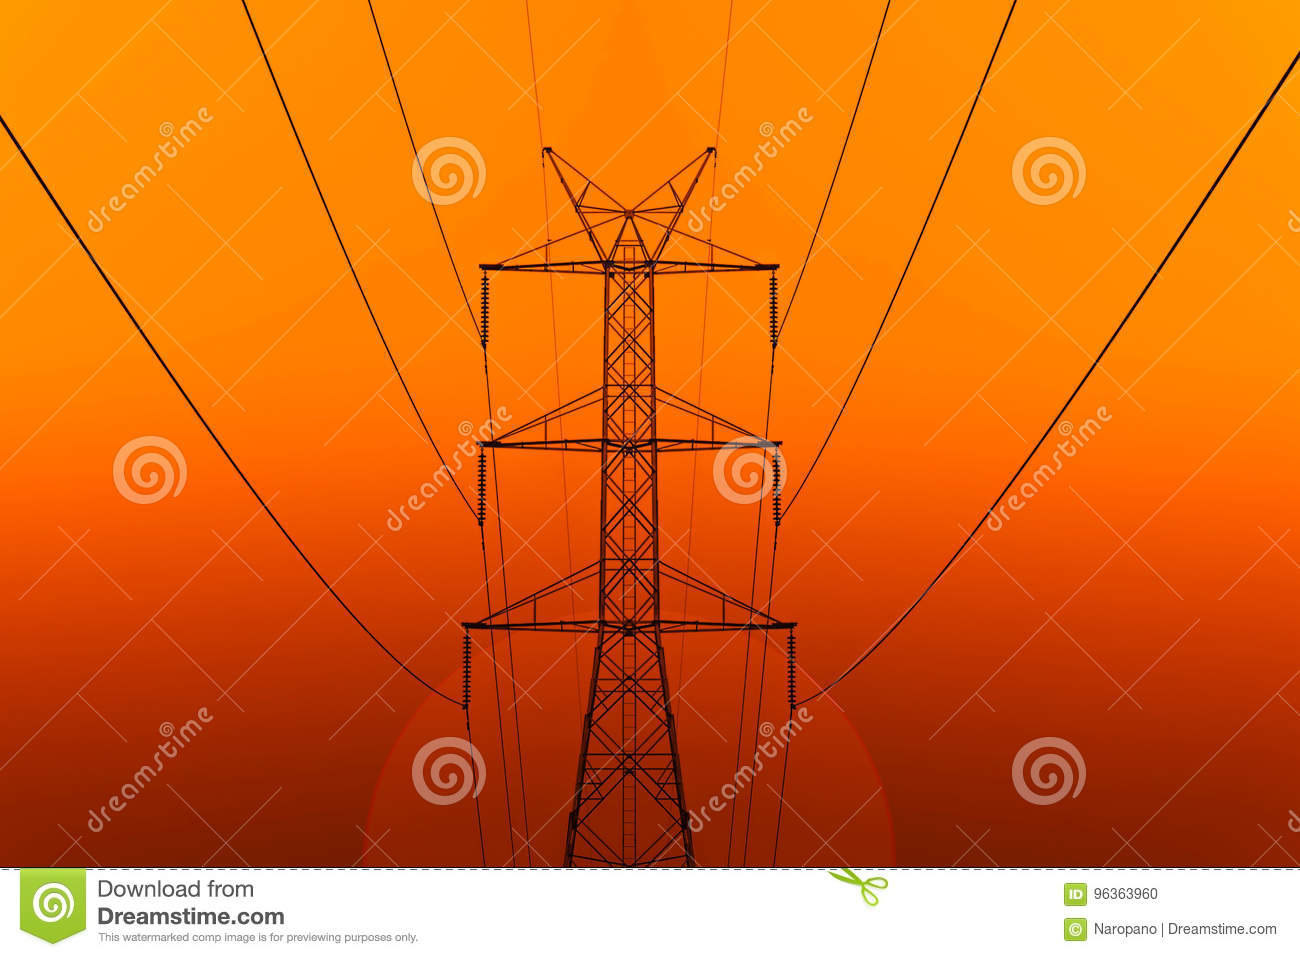 High Voltage Electric Transmission Tower Energy